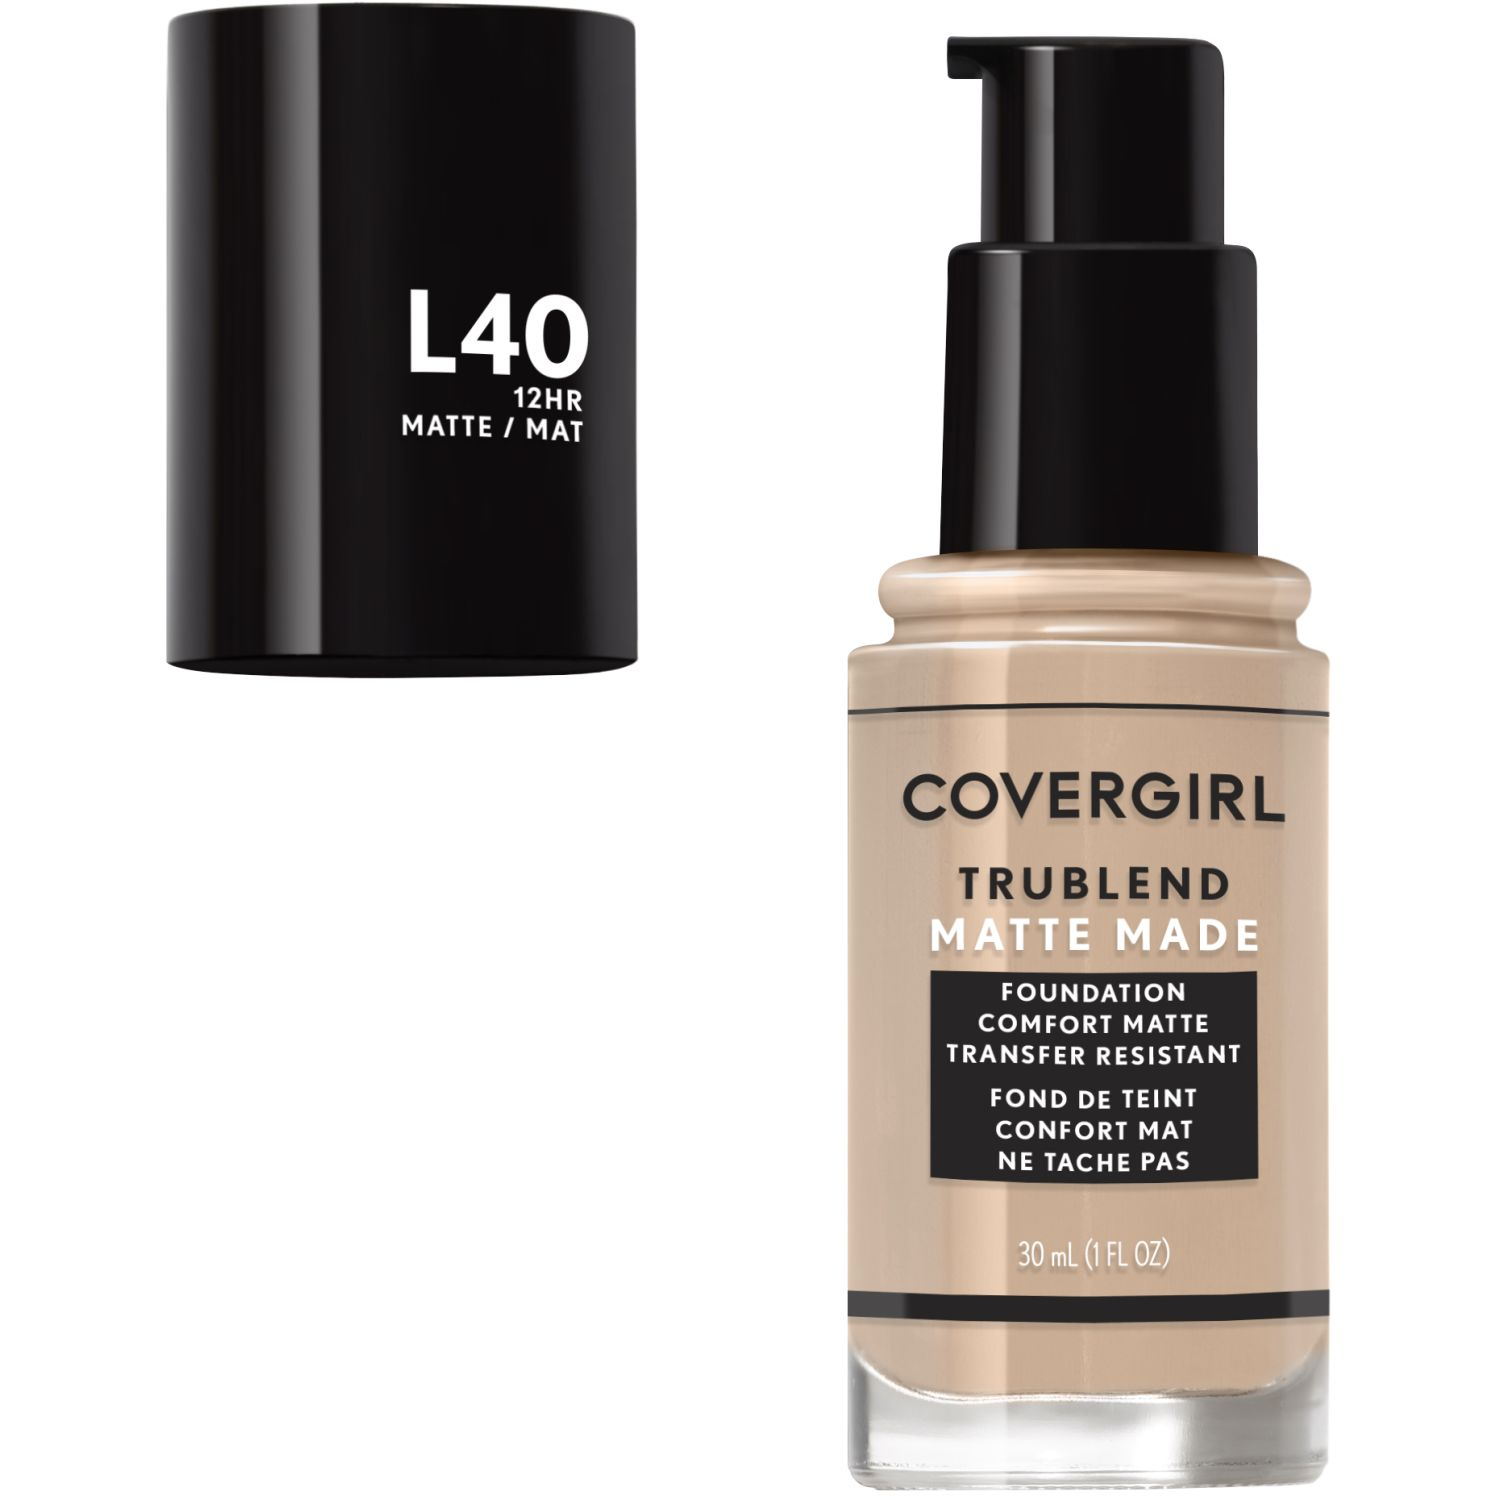 Covergirl Base TruBlend Matte Made Liquid Makeup CLASSIC IVORY L40 Fundación